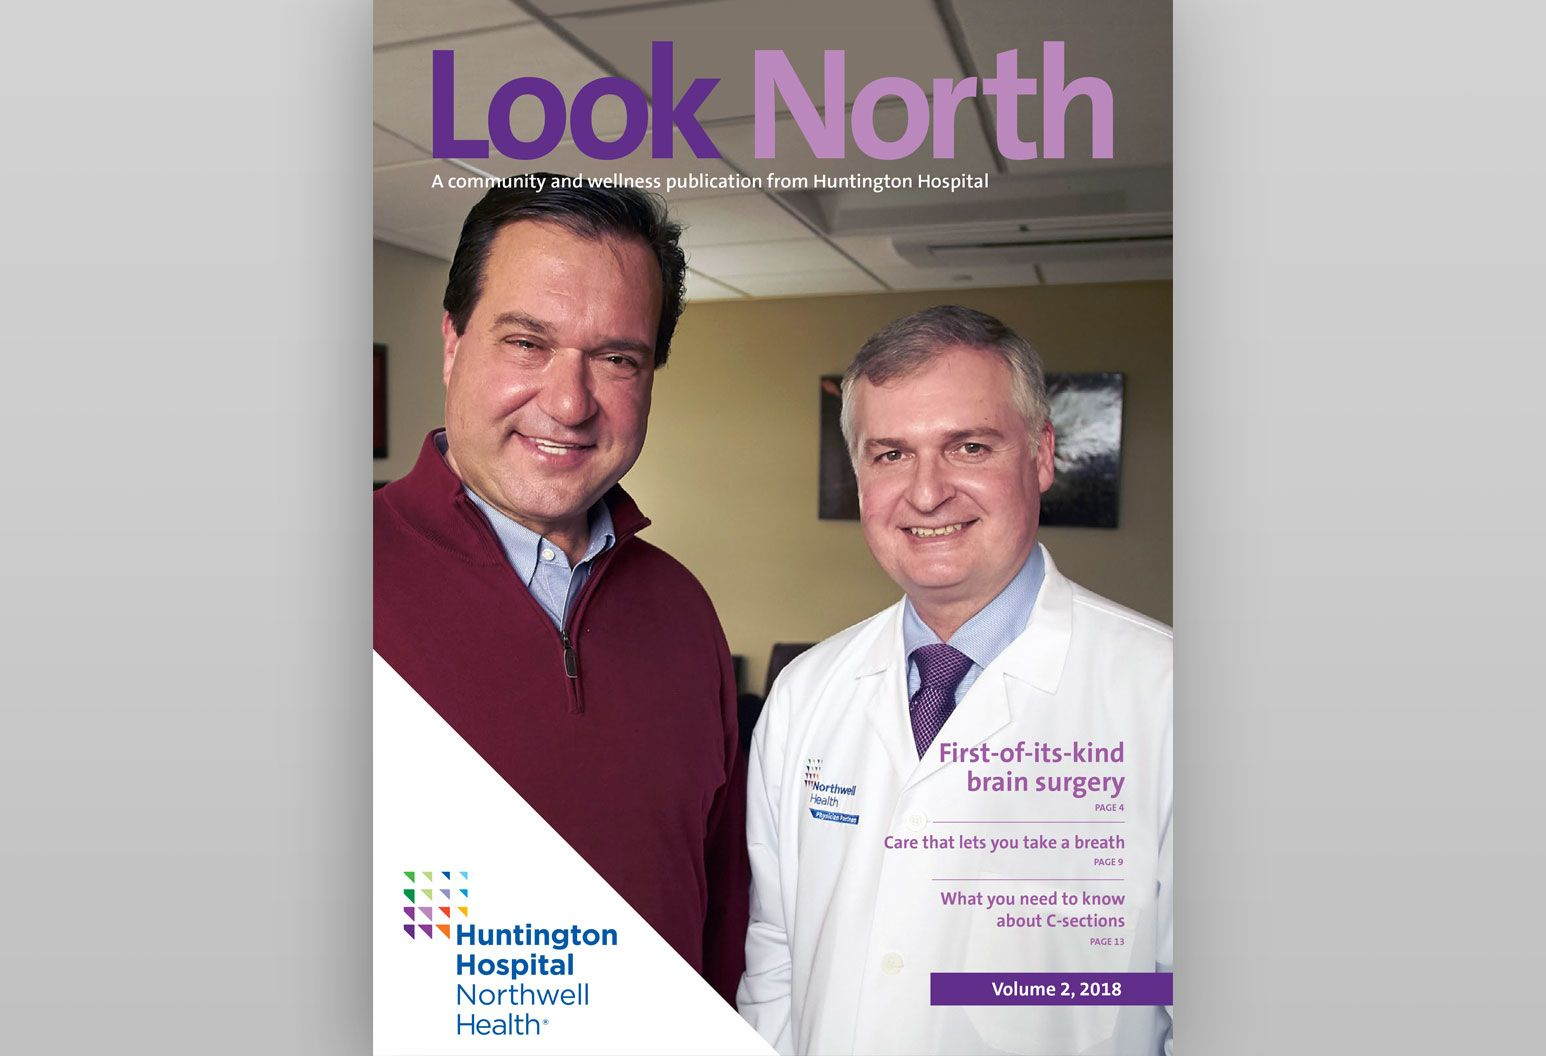 Magazine cover picture of a male doctor and patient smiling looking at the camera